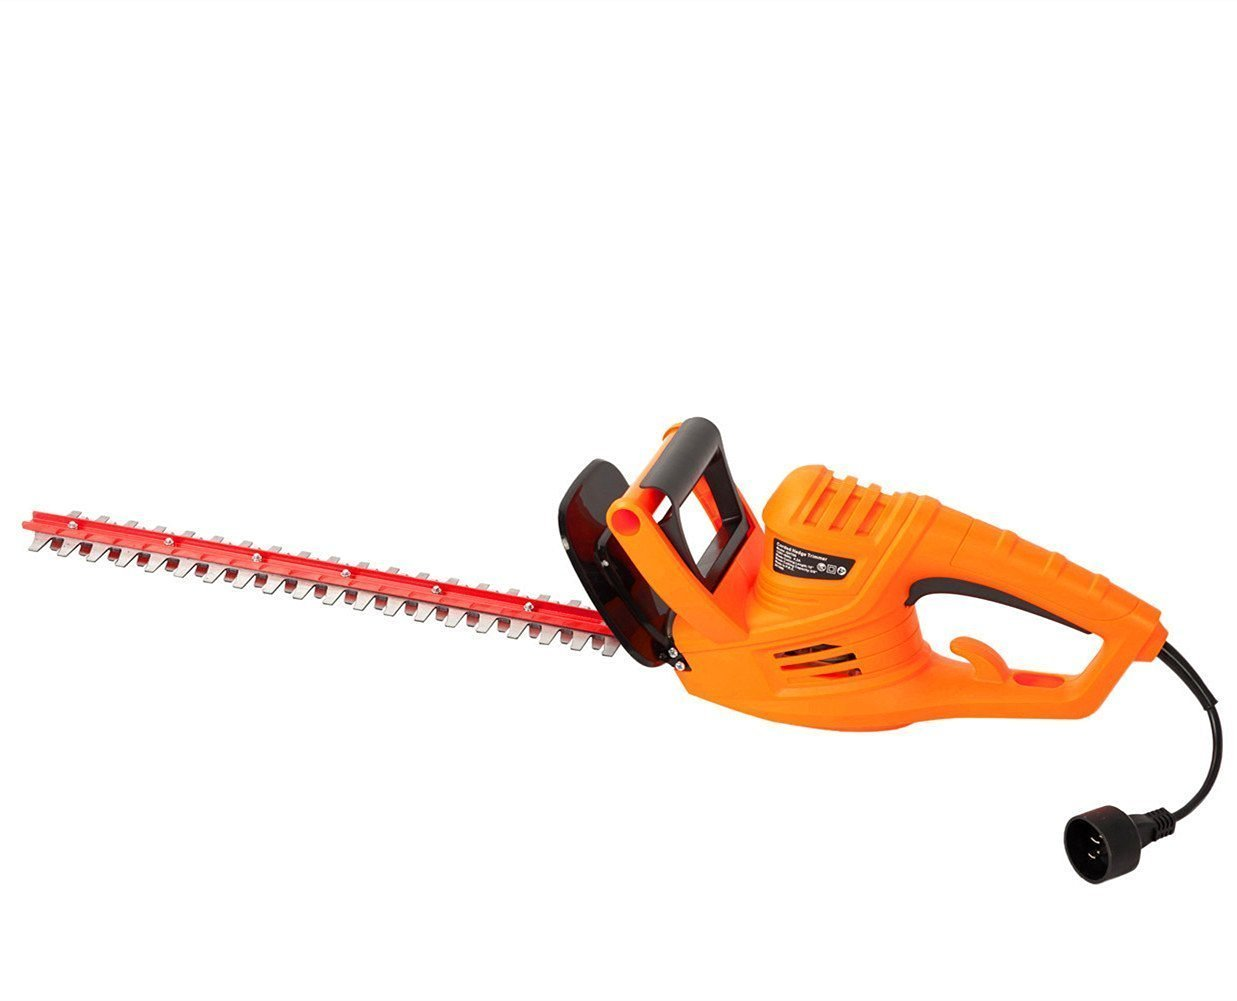 NBCYHTS 4.2-Amp Corded Hedge Trimmer, 18'' Laser Cutting Blade